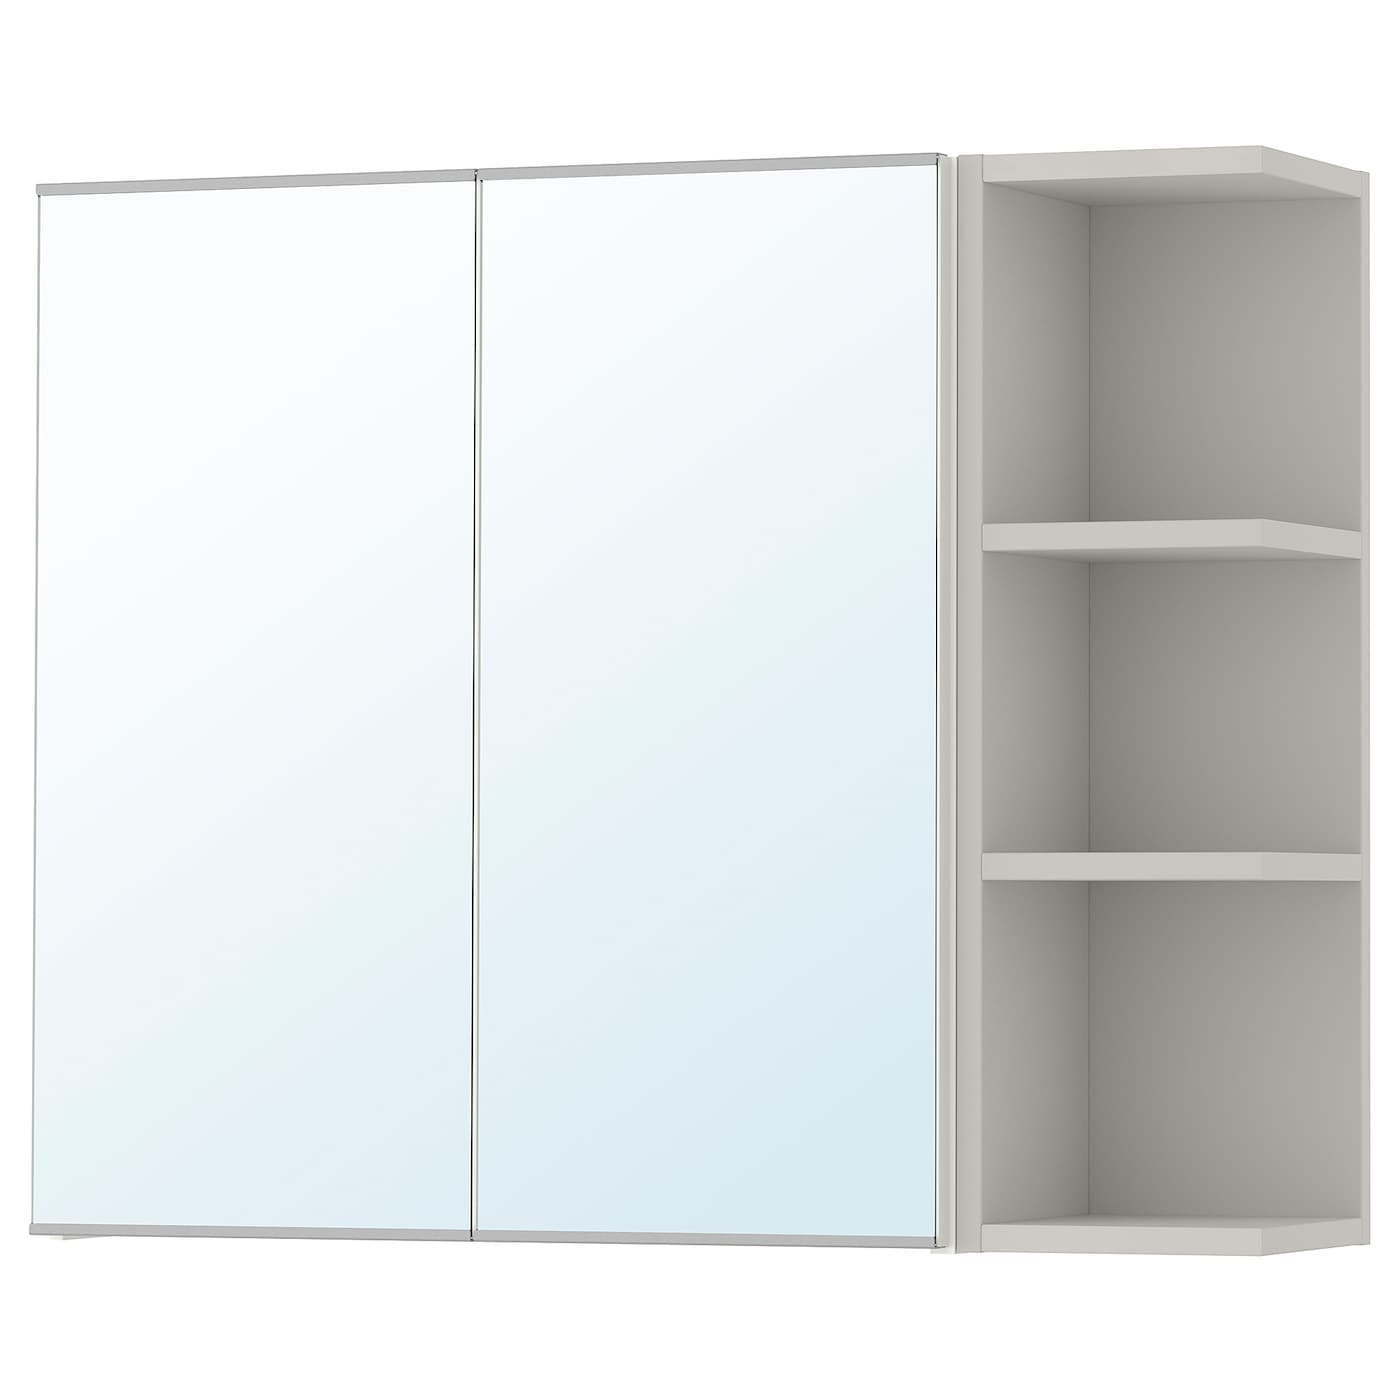 IKEA LILLÅNGEN mirror cabinet 2 doors/1 end unit